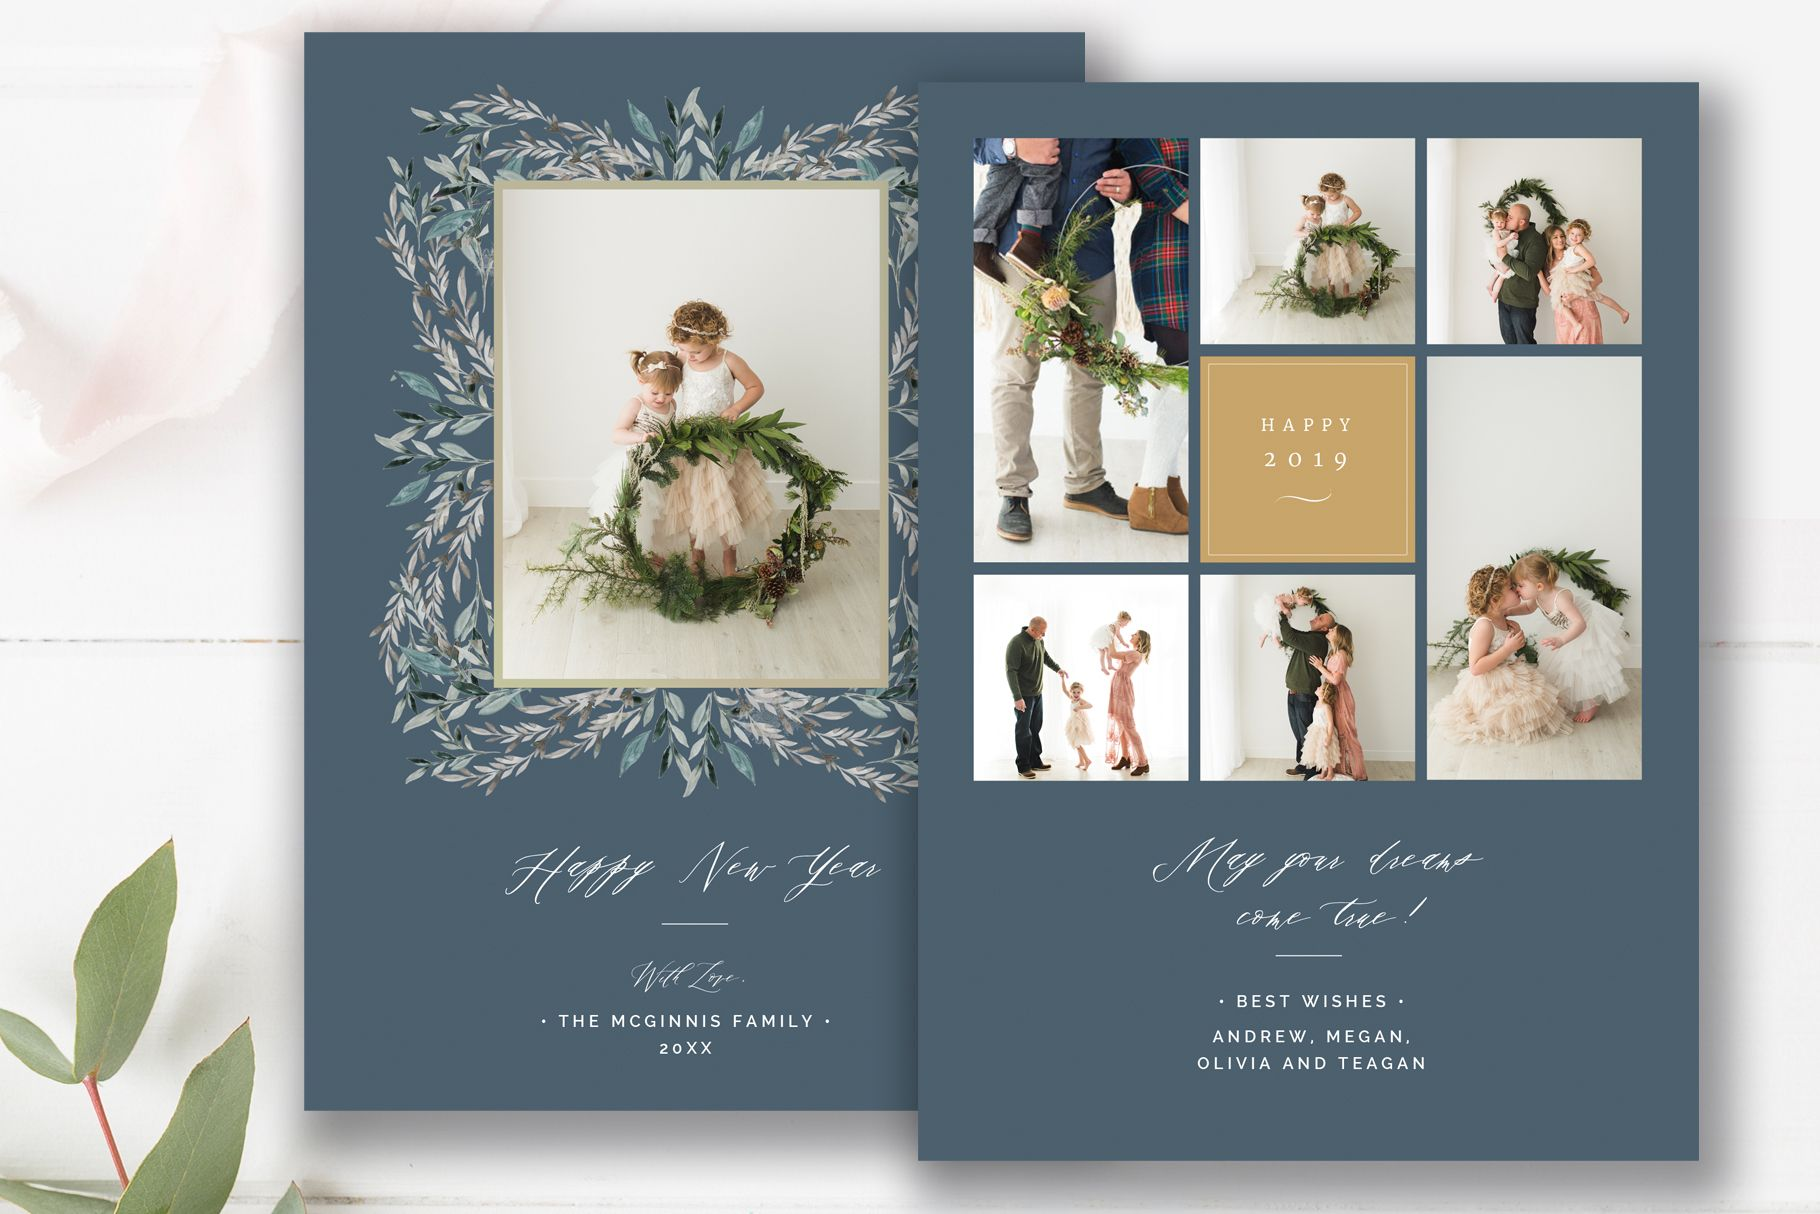 Happy New Years Photo Card Template Photoshop Templates For Photographers By Stephanie Design Photo Card Template Happy New Year Photo Photoshop Template Design